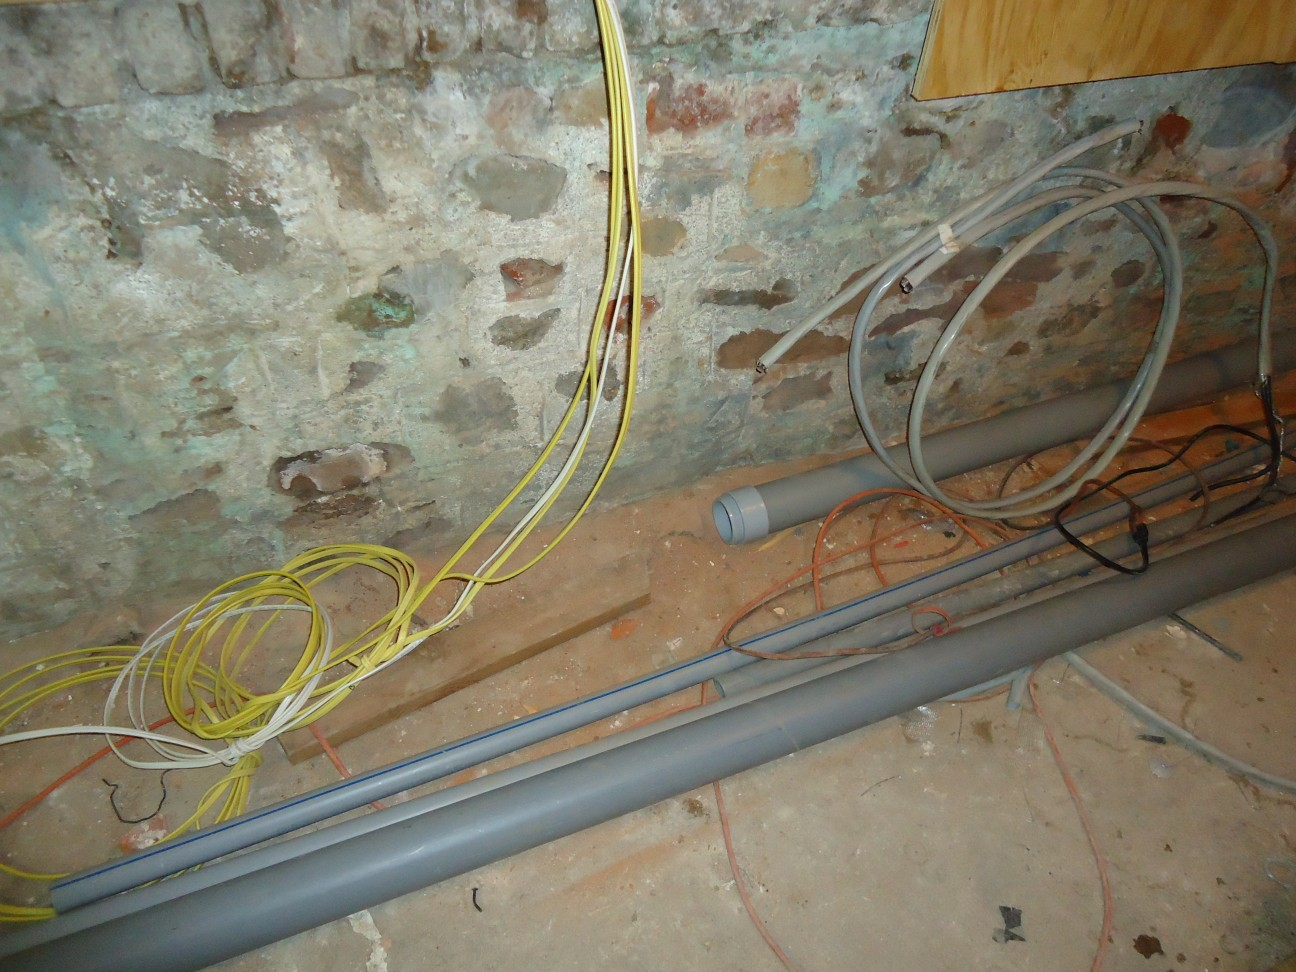 Filekitchen Renovation Wires And Conduit In Basement Wiring